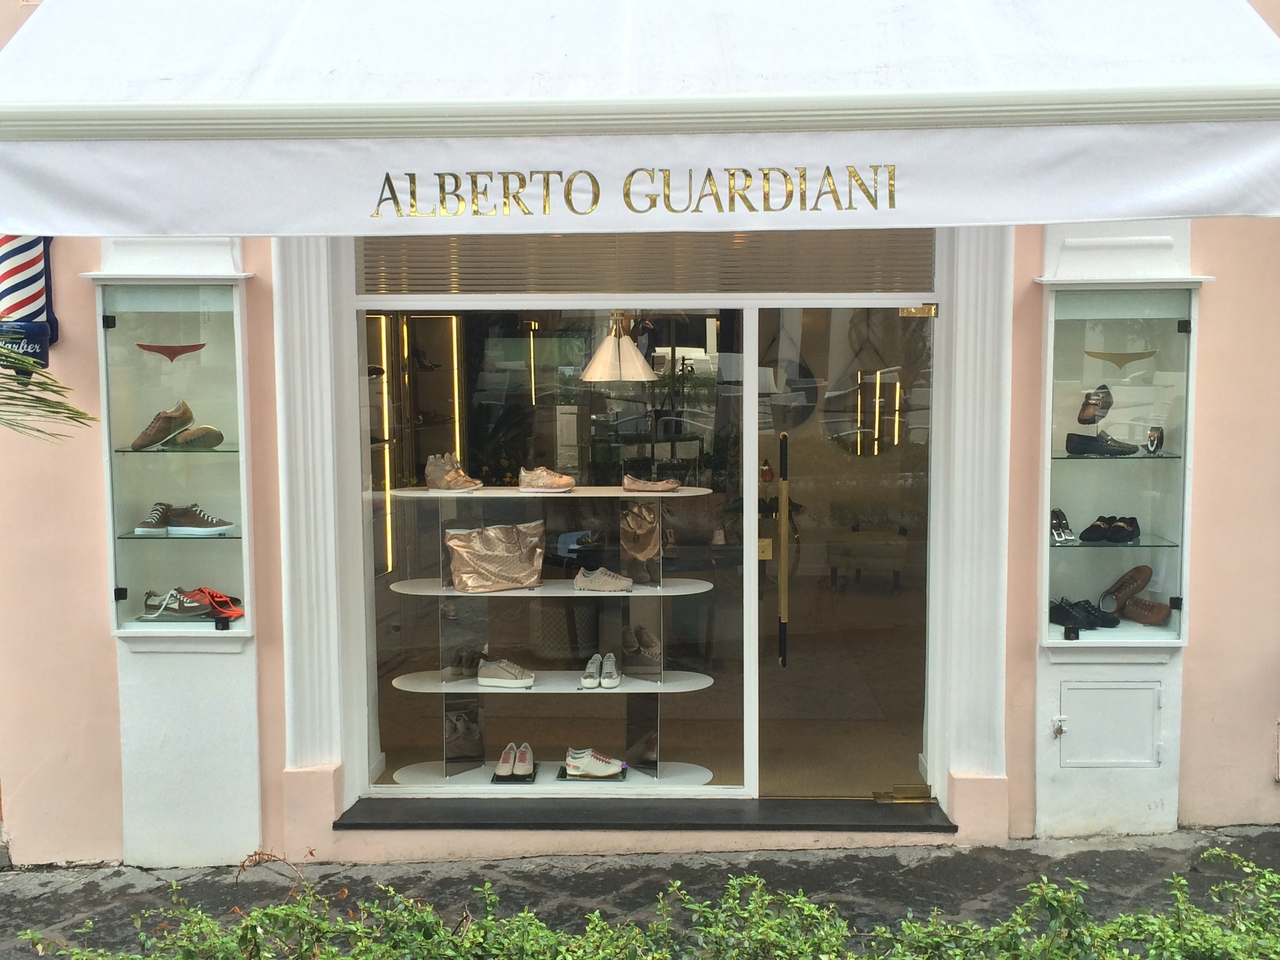 New openings for Alberto Guardiani